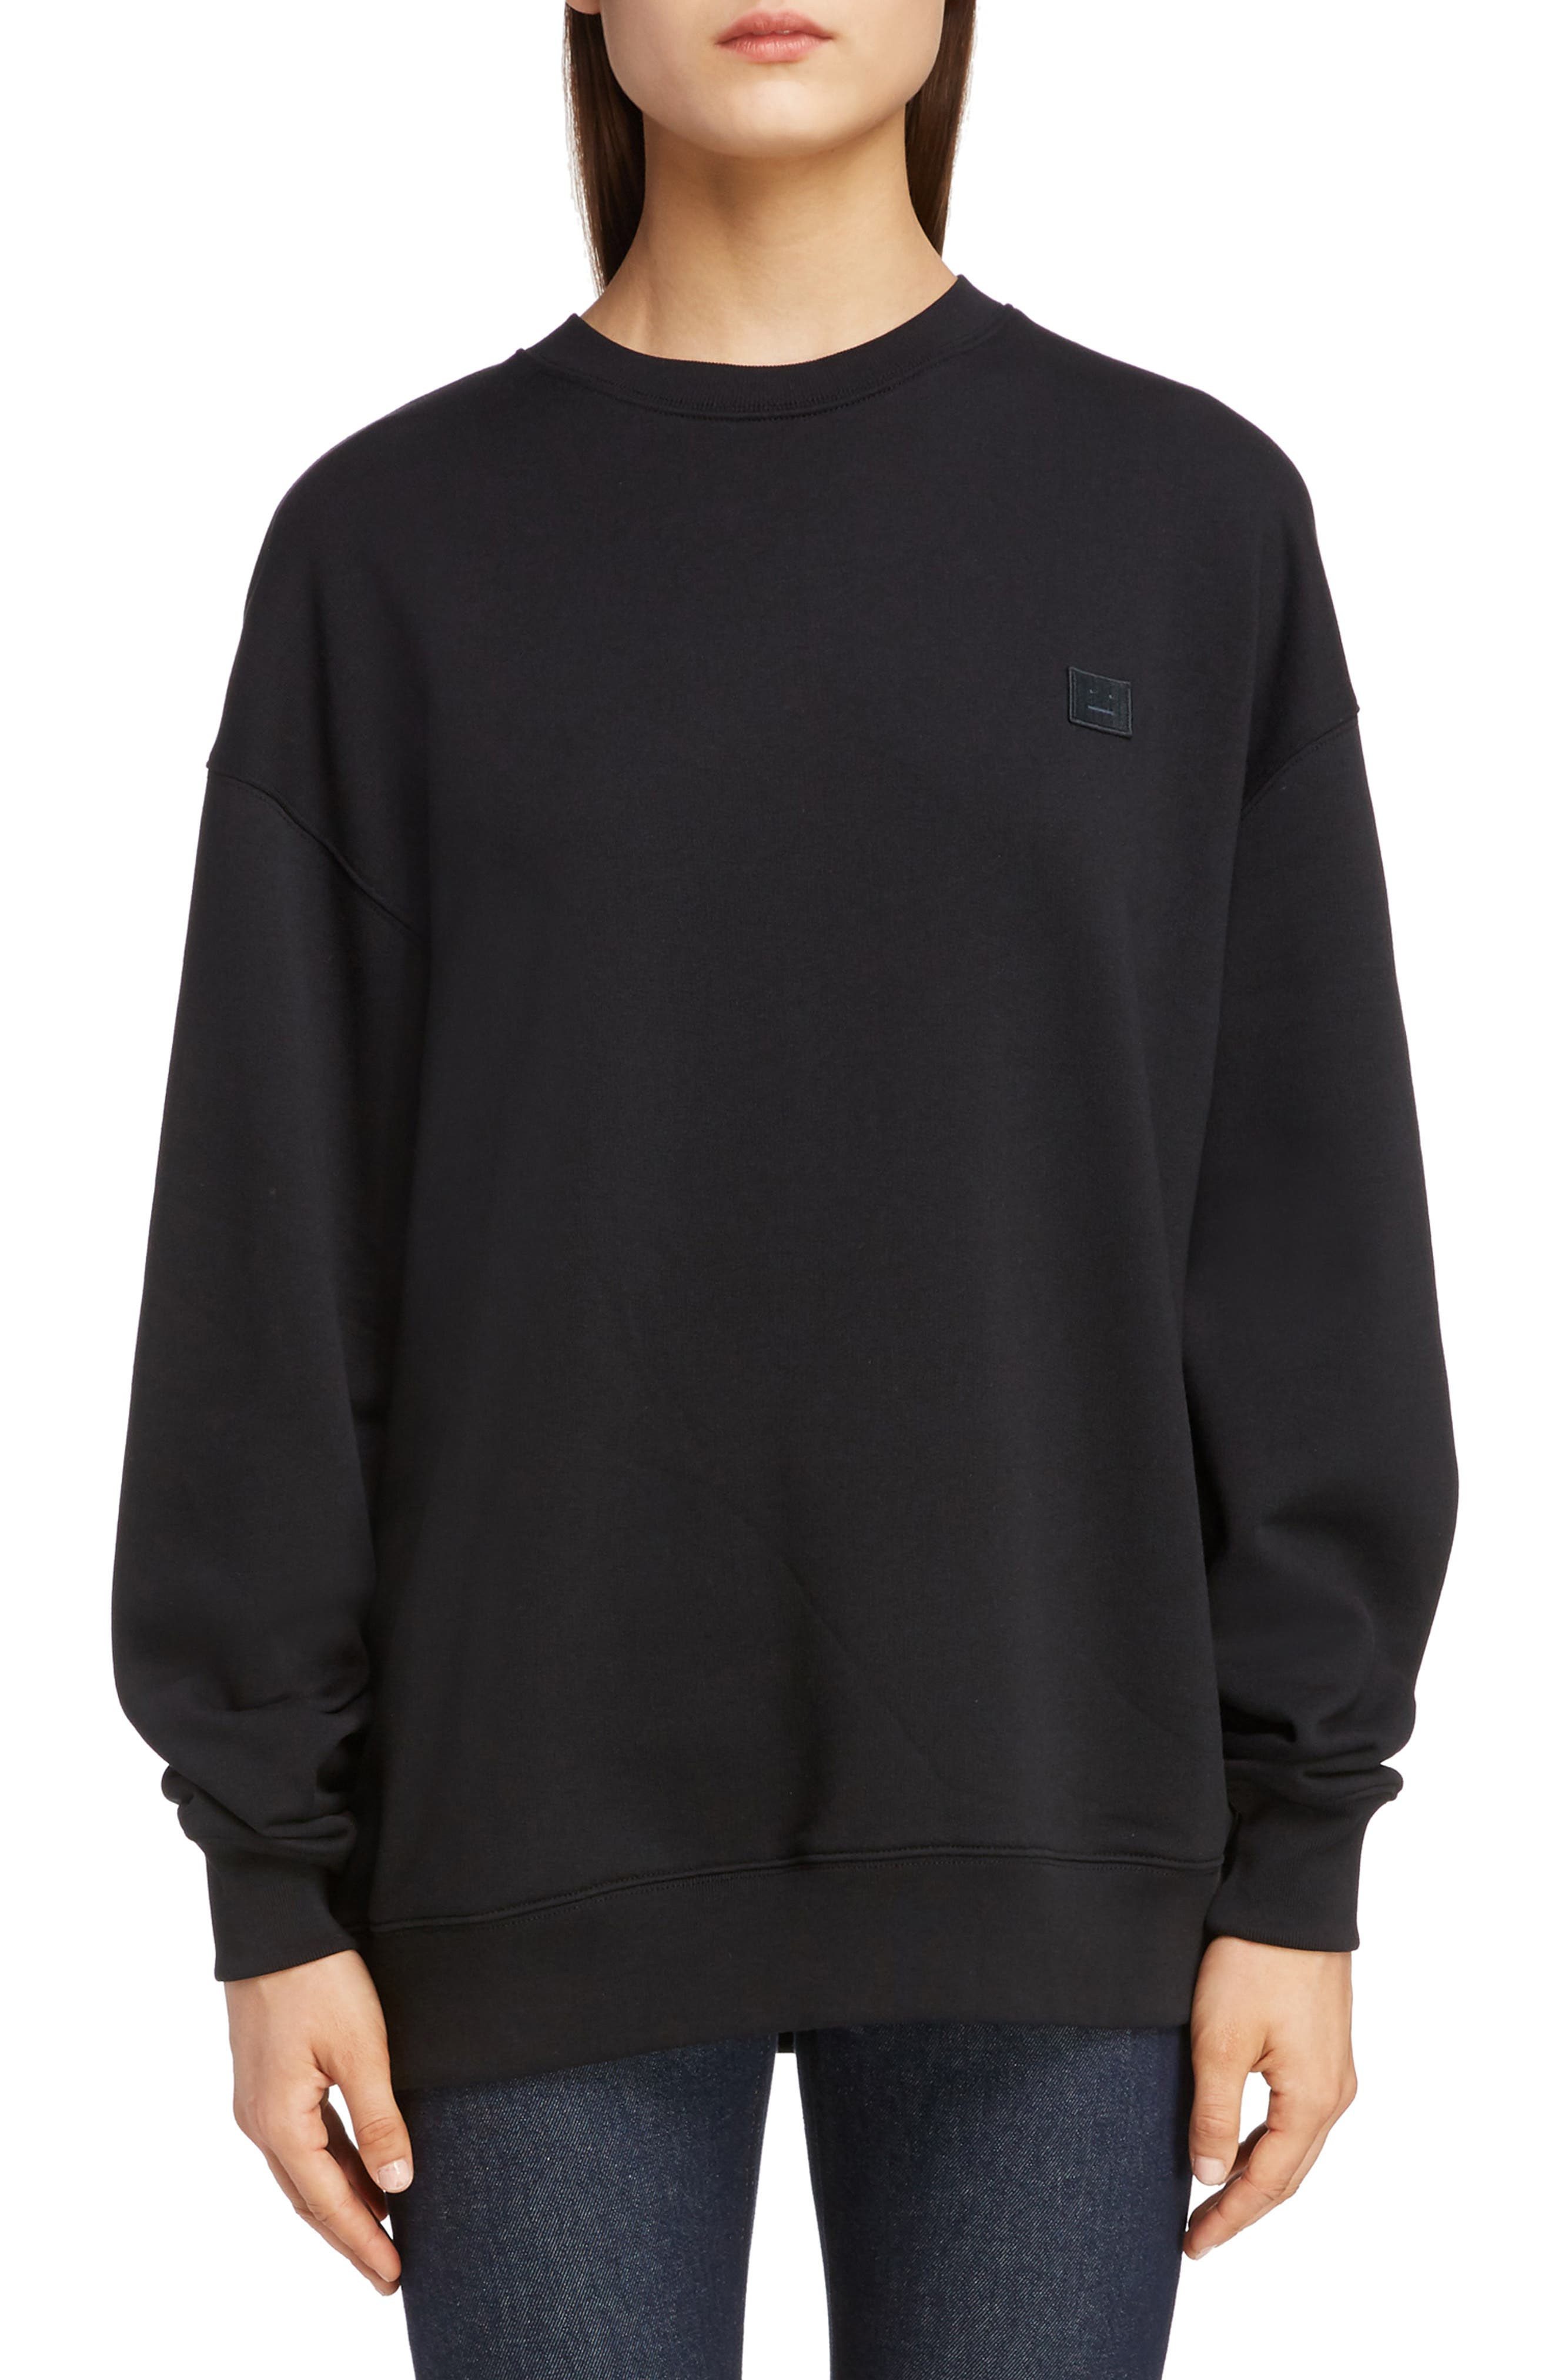 ACNE STUDIOS Forba Face Sweatshirt, Main, color, BLACK